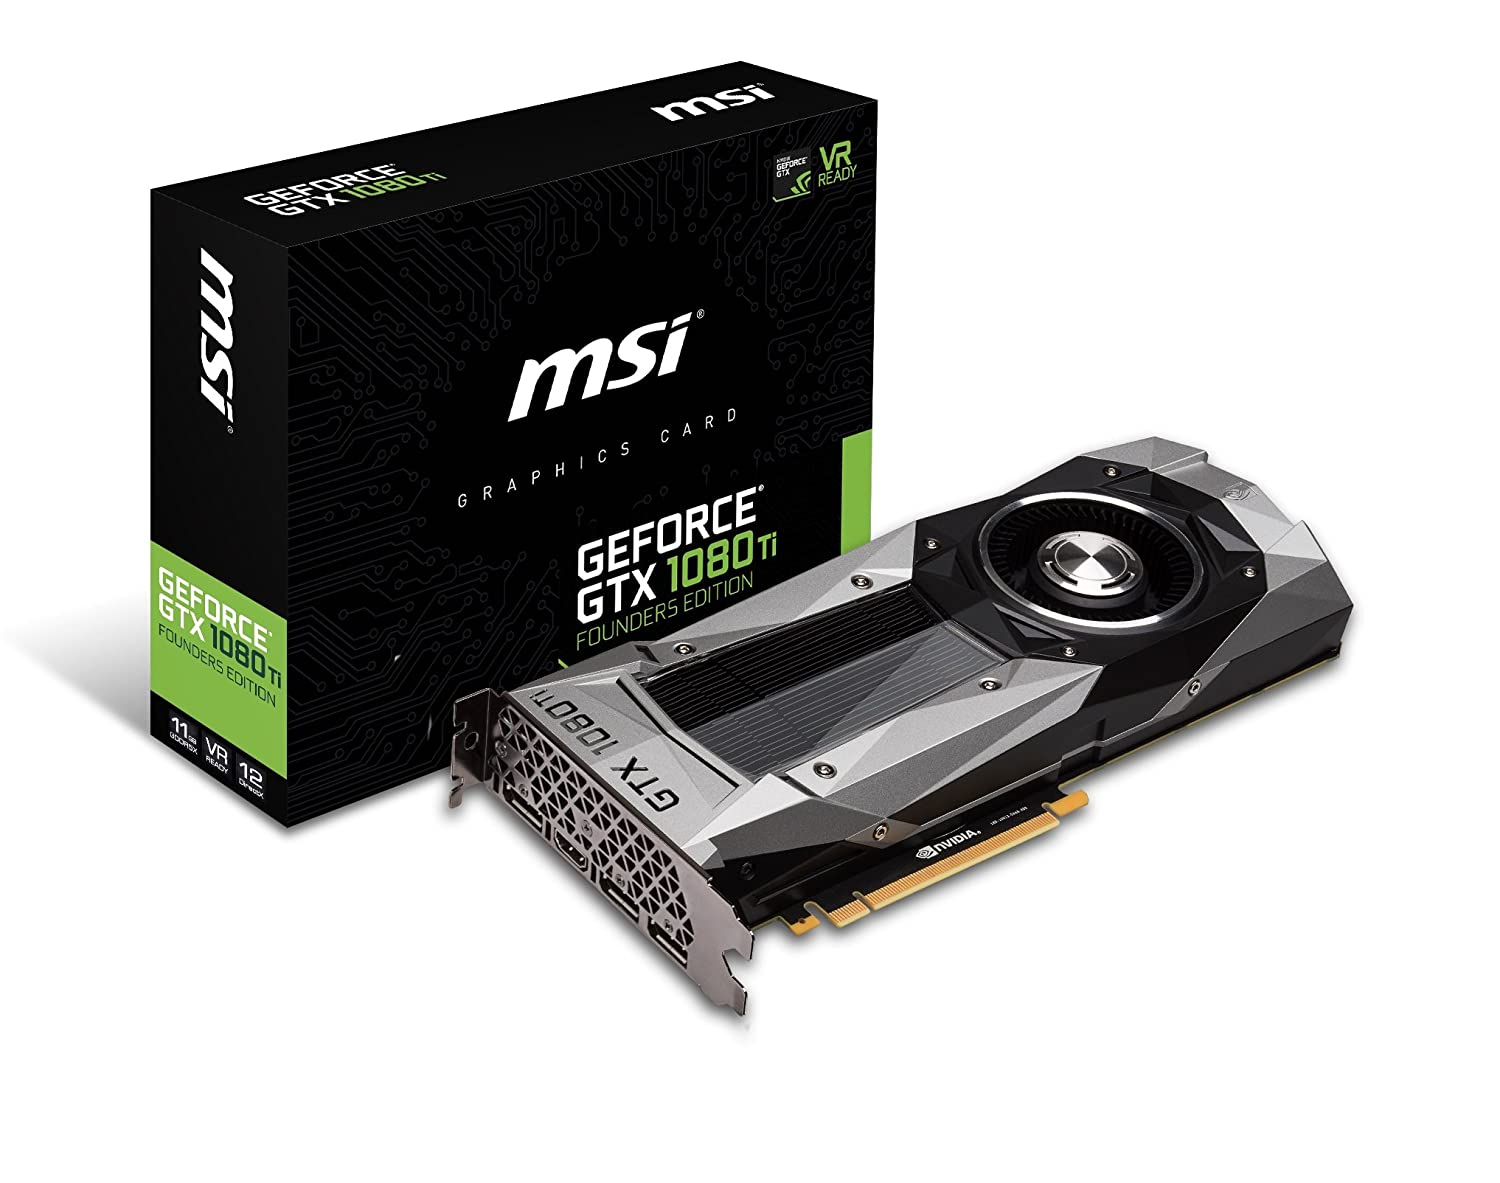 d2145c0a7252a4 Amazon.com  MSI GTX 1080 Ti Founders Edition Graphic Cards GTX 1080 Ti Founders  Edition  Computers   Accessories